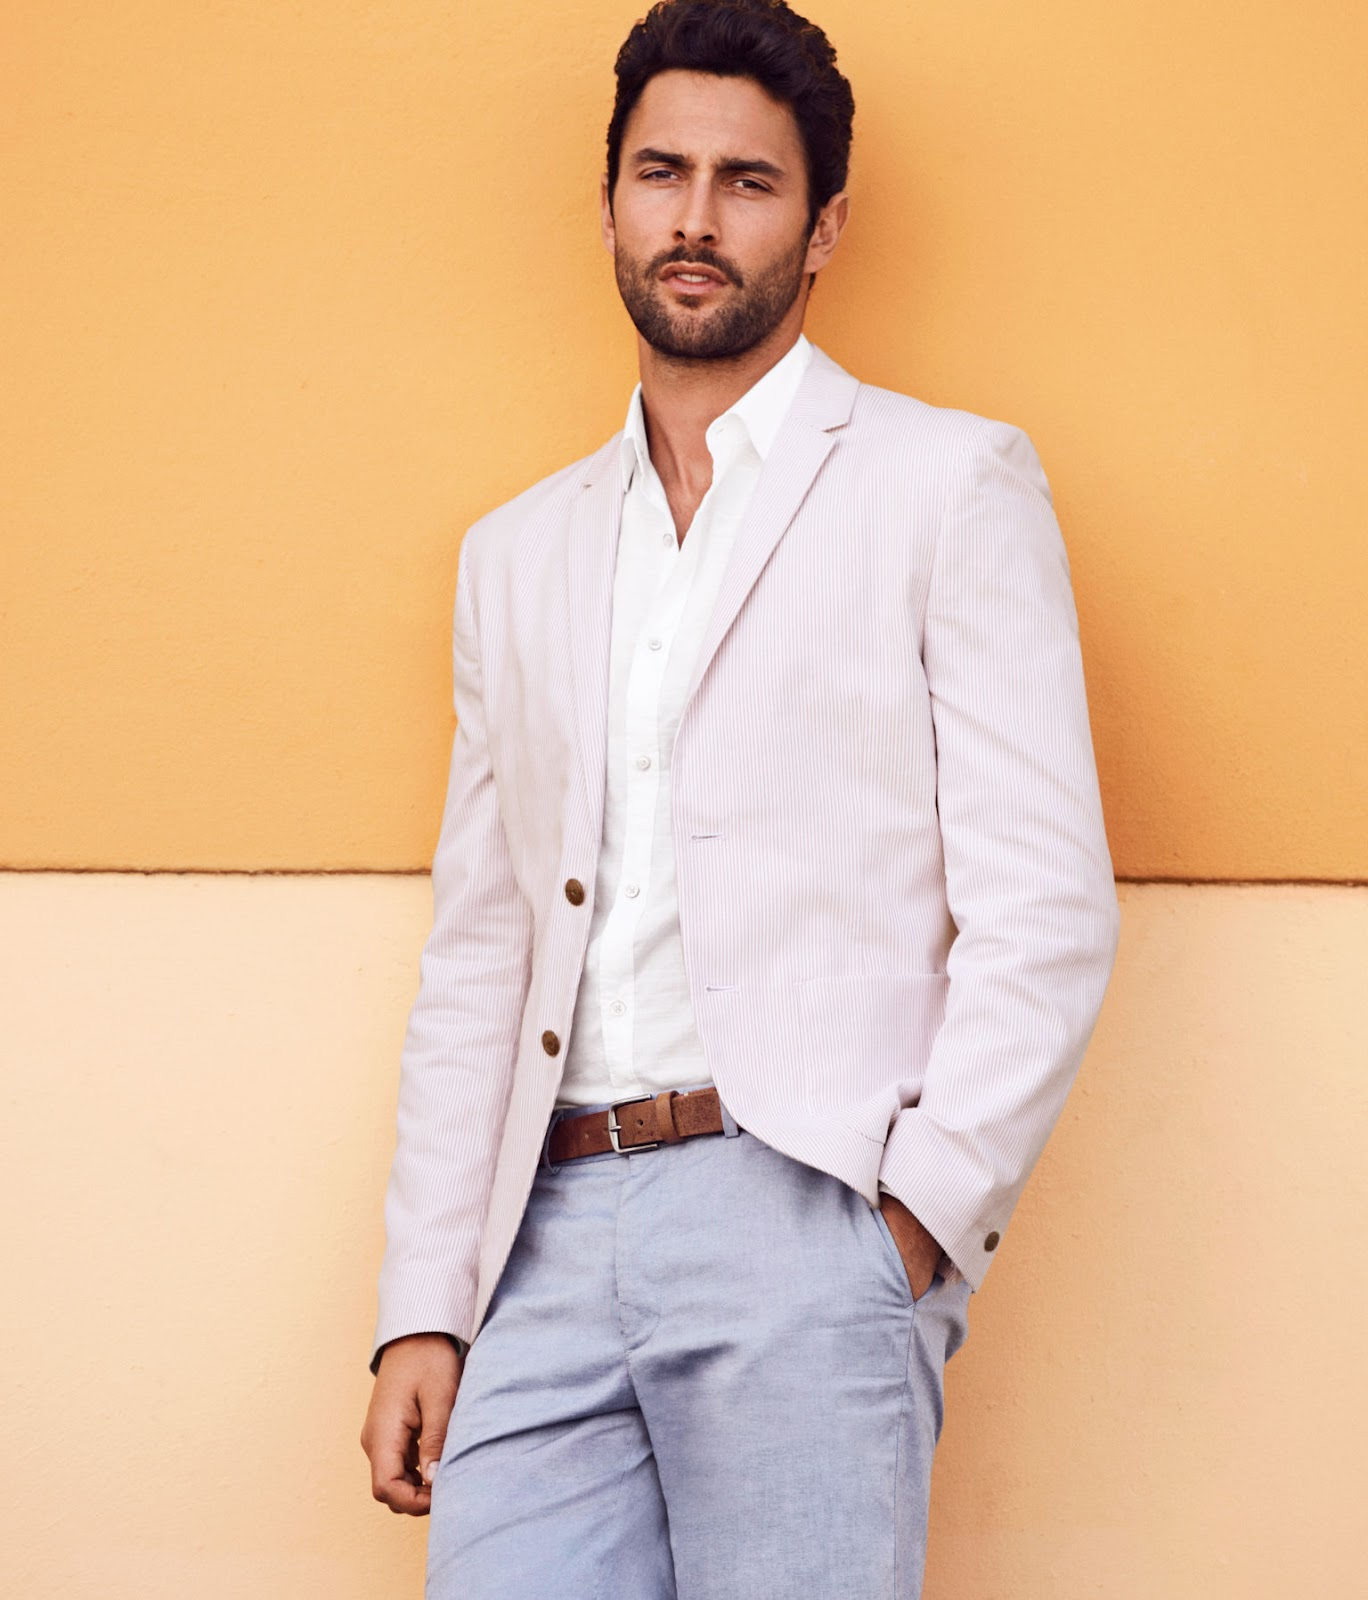 Model Noah Mills Made a Movie About Muscles and Feelings 70